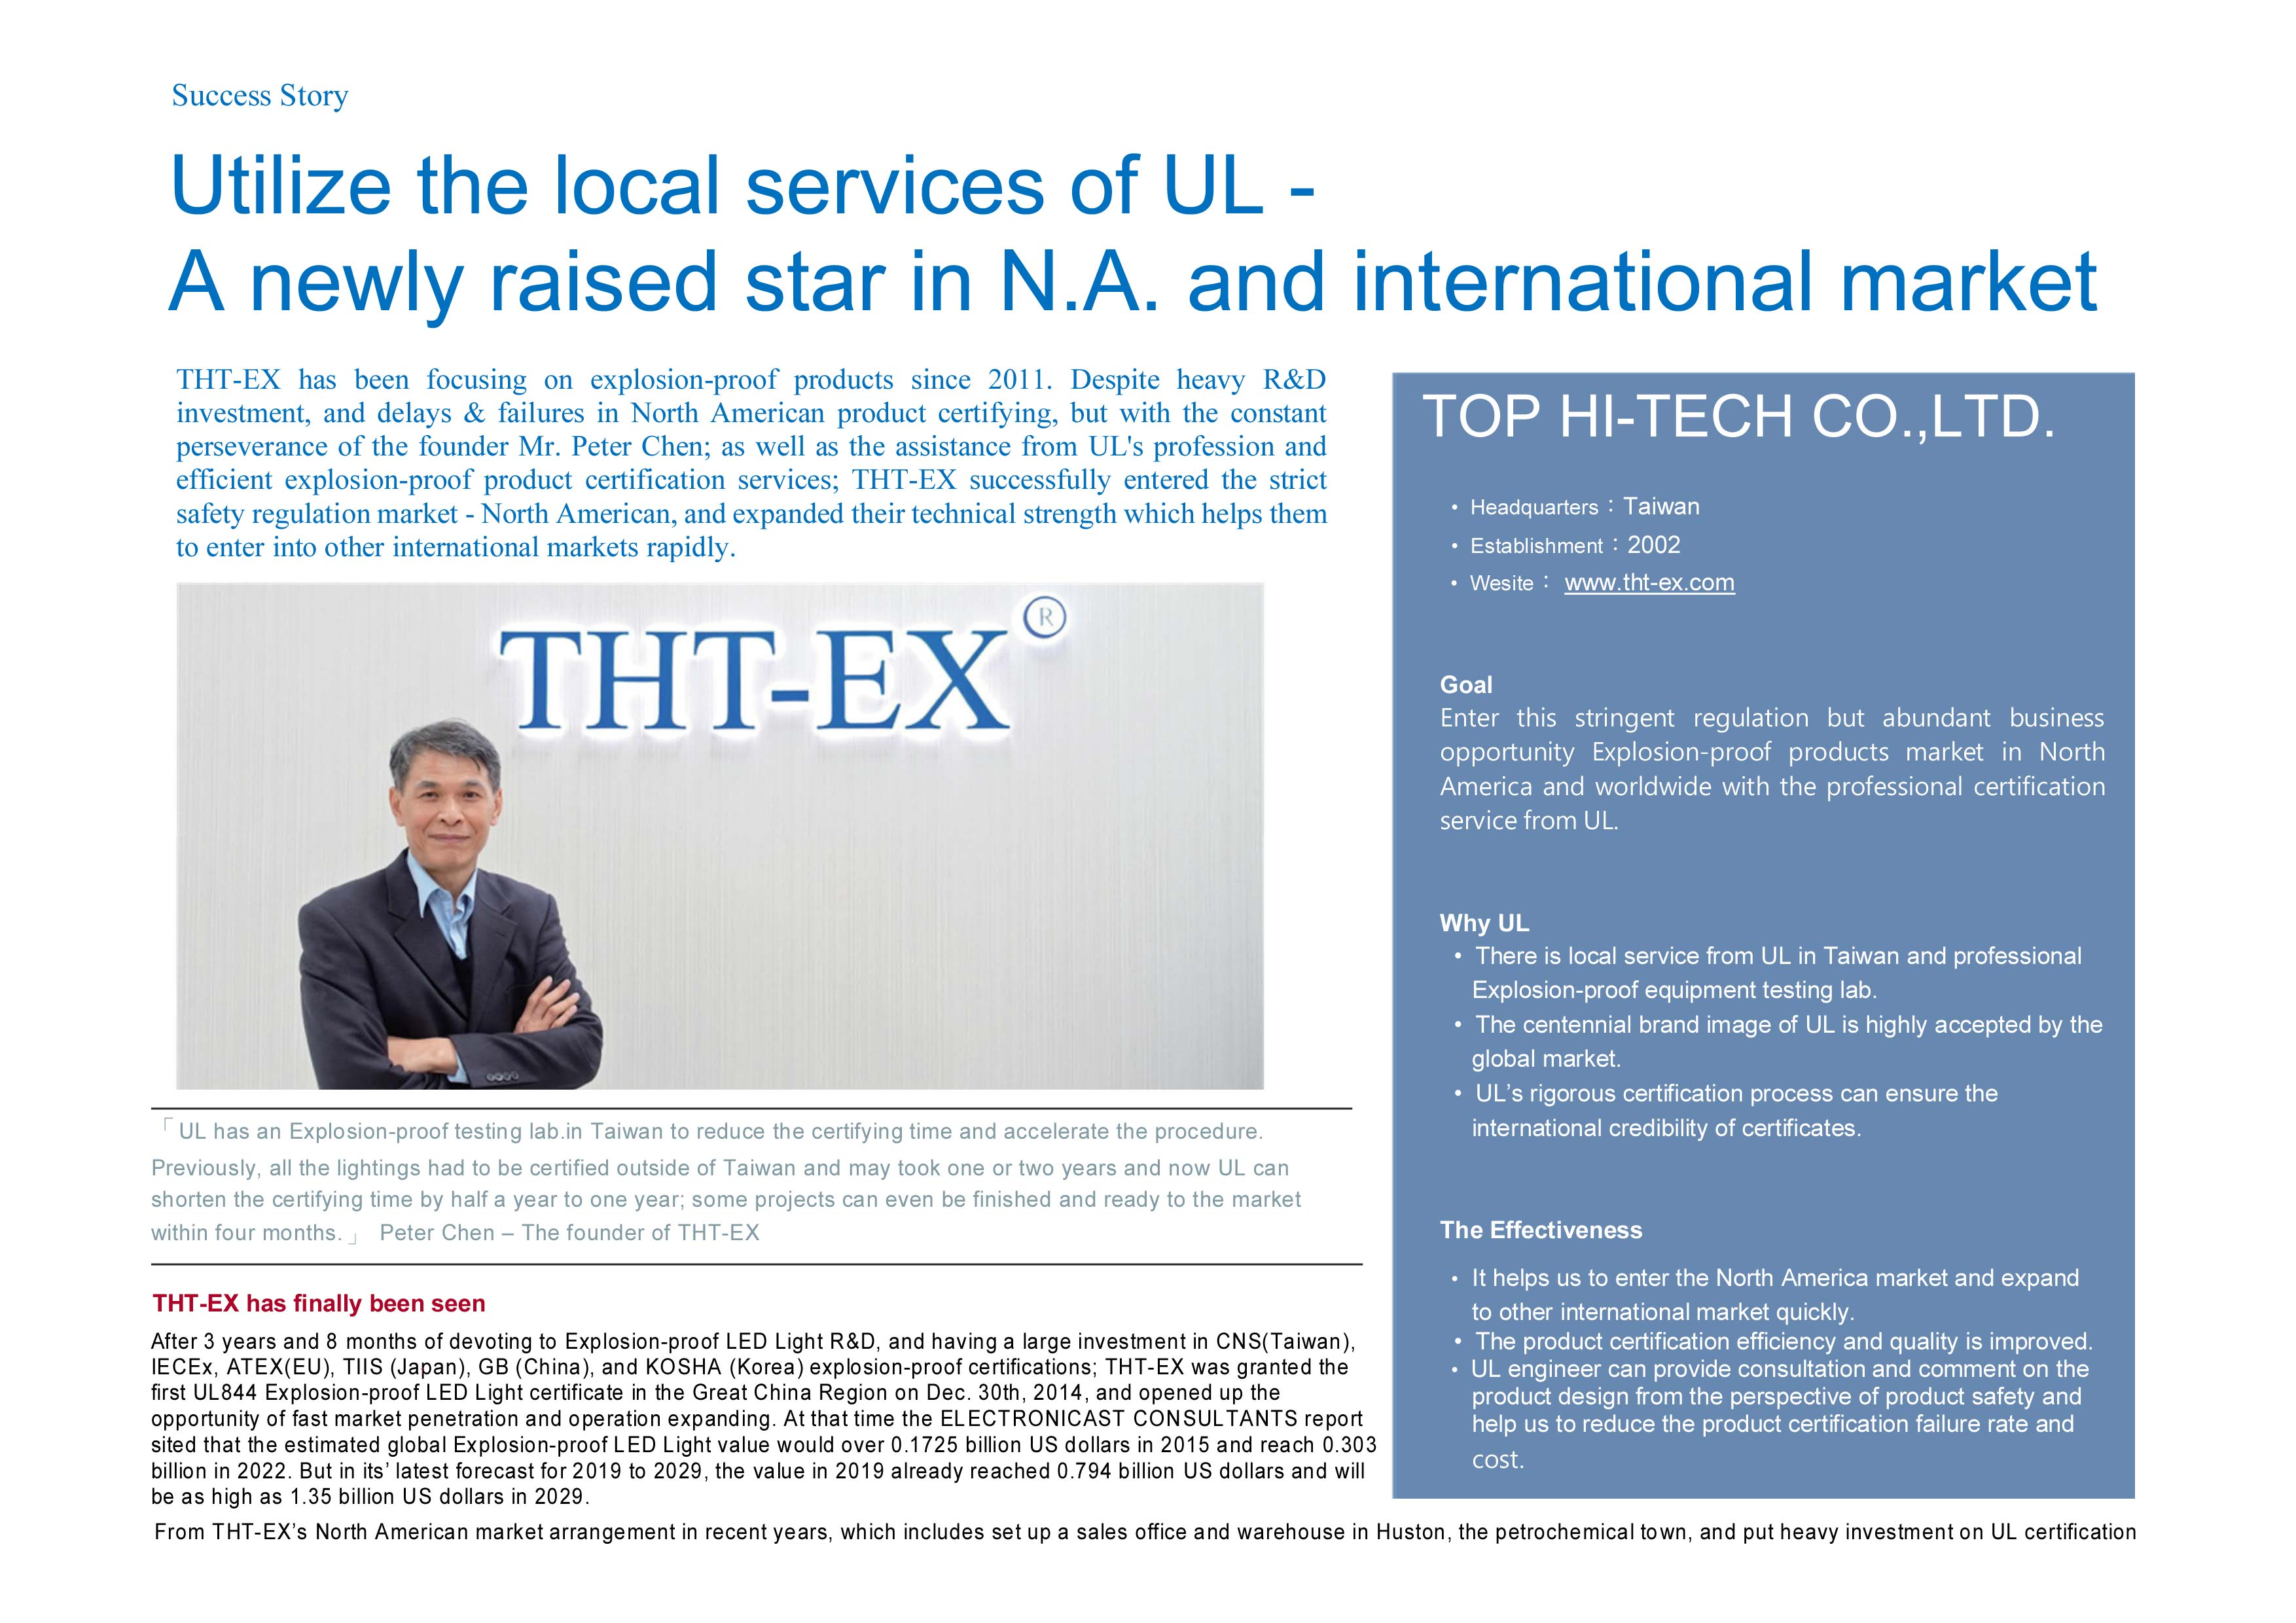 Utilize the Local Services of UL - THT-EX A Newly Raised Star in N.A. & International Market